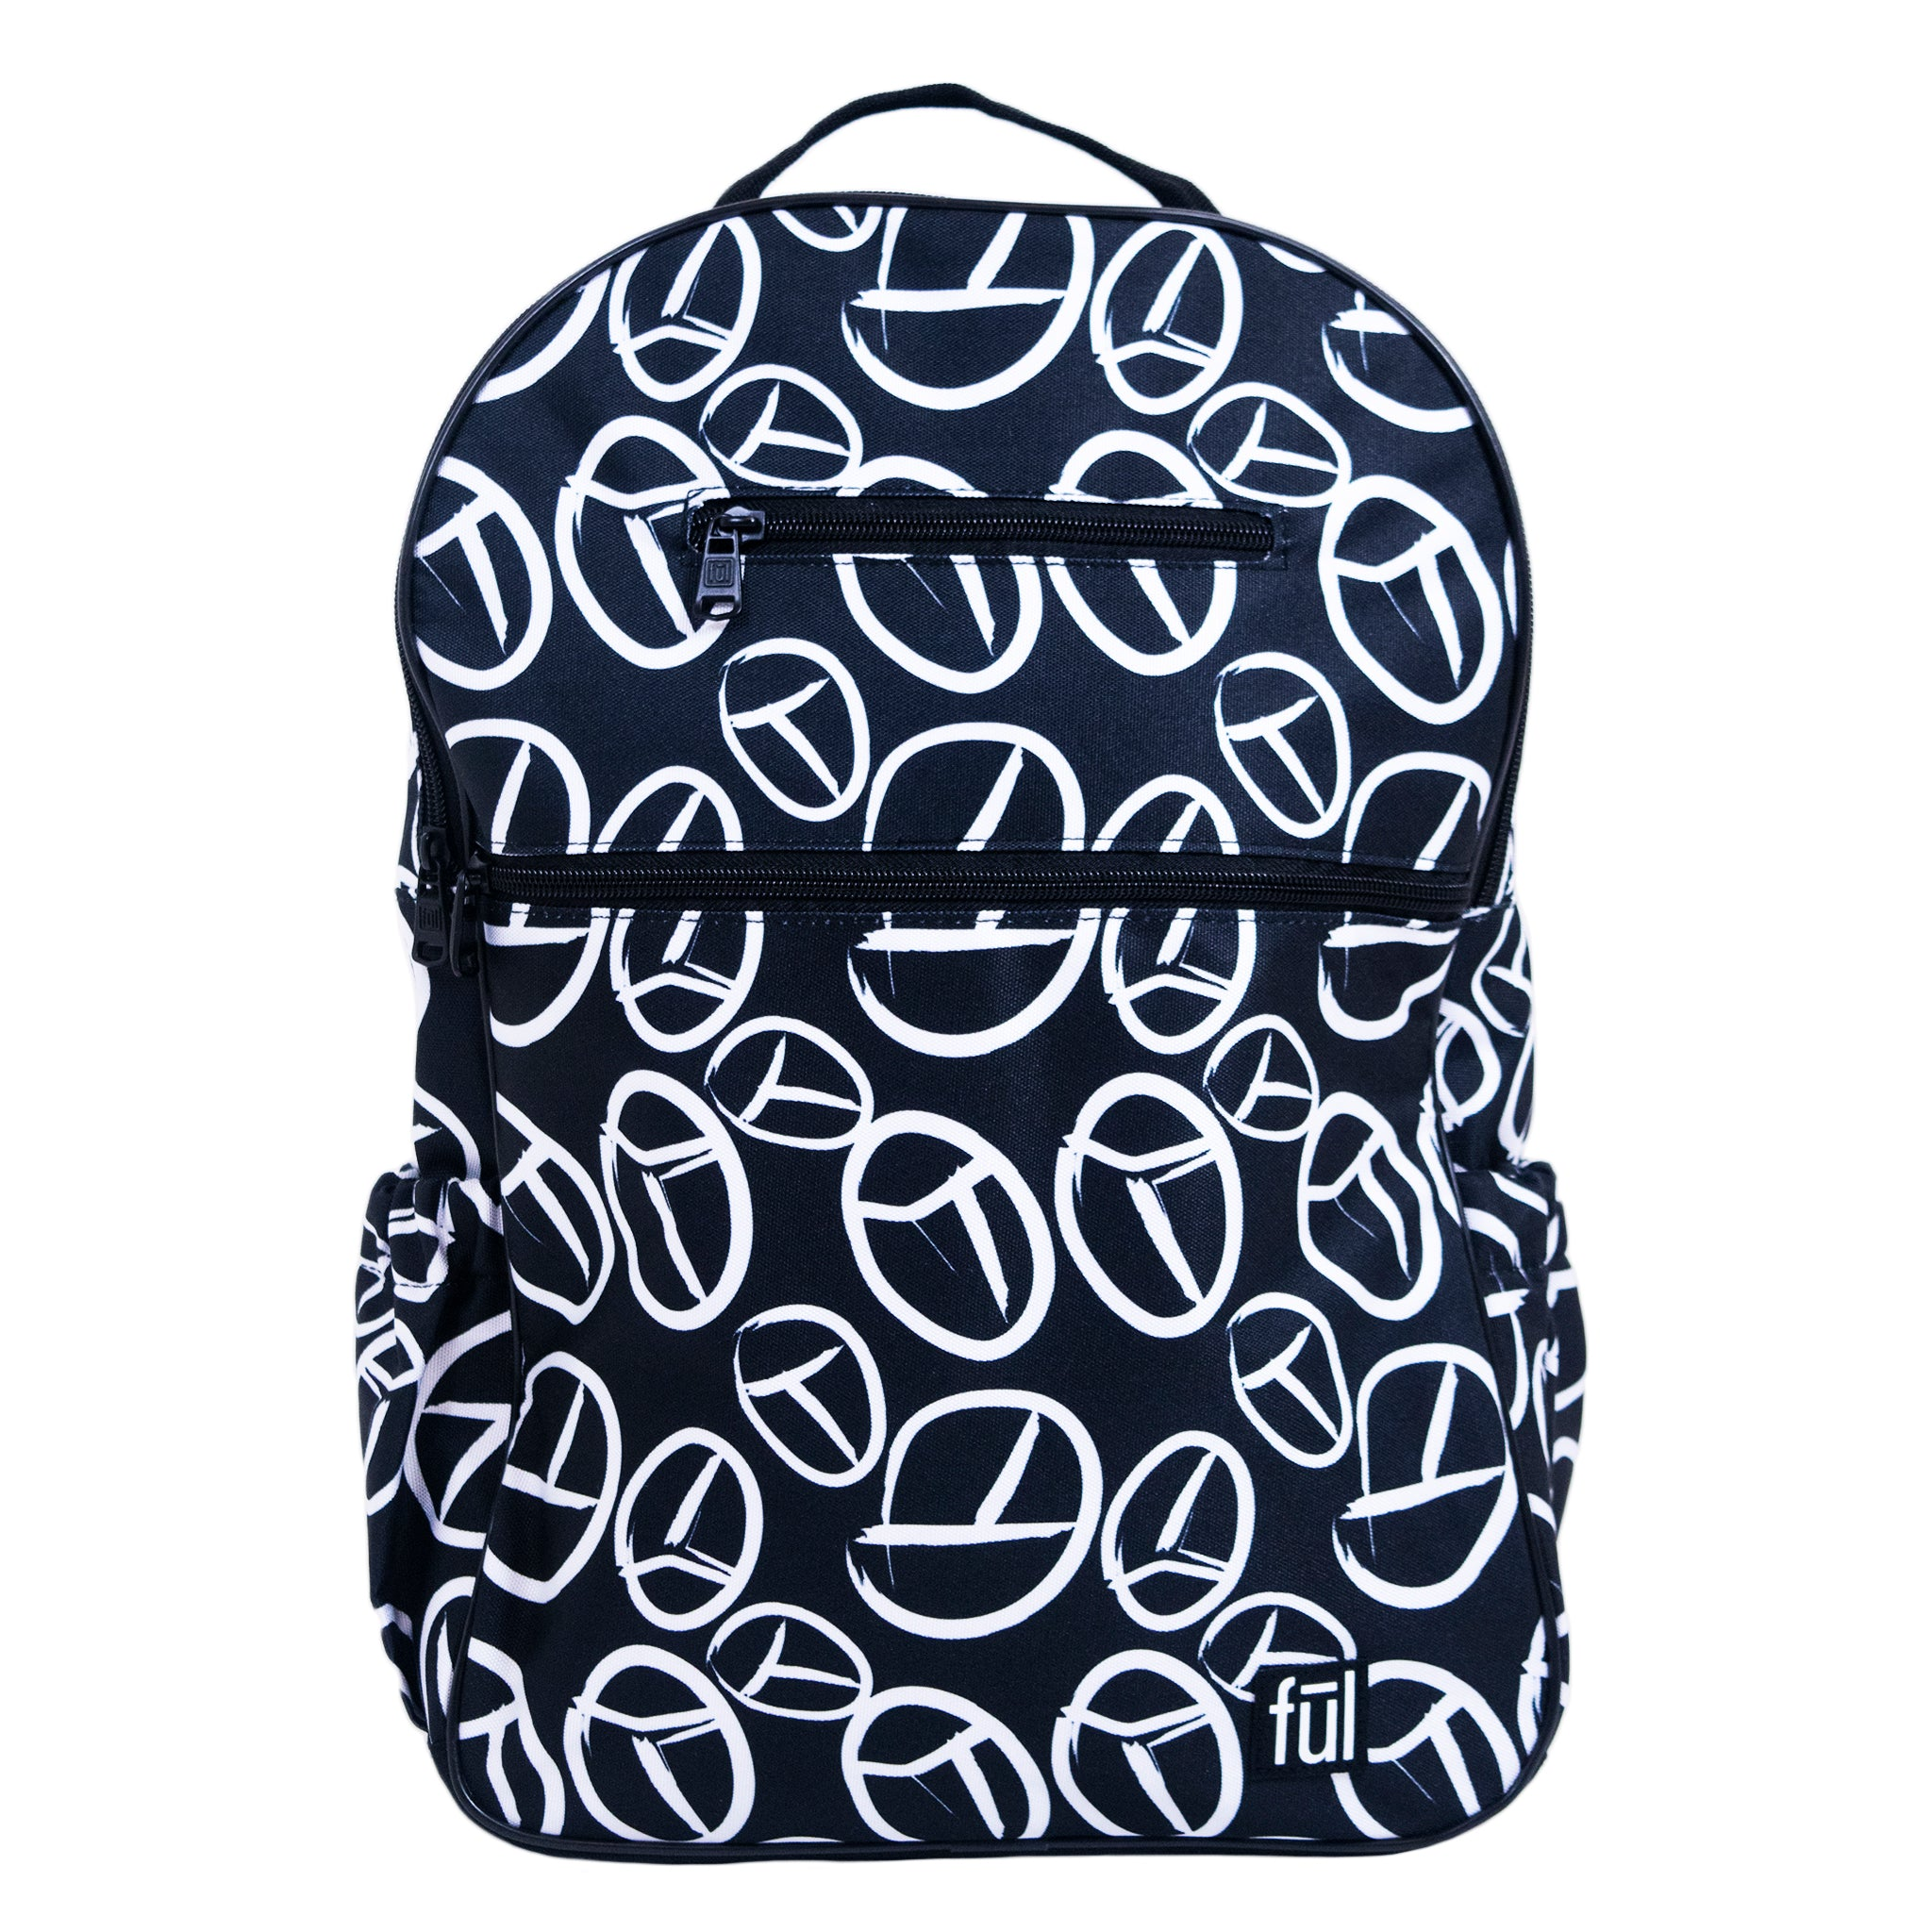 Accra Fashion Laptop Backpack, Black Peace Sign